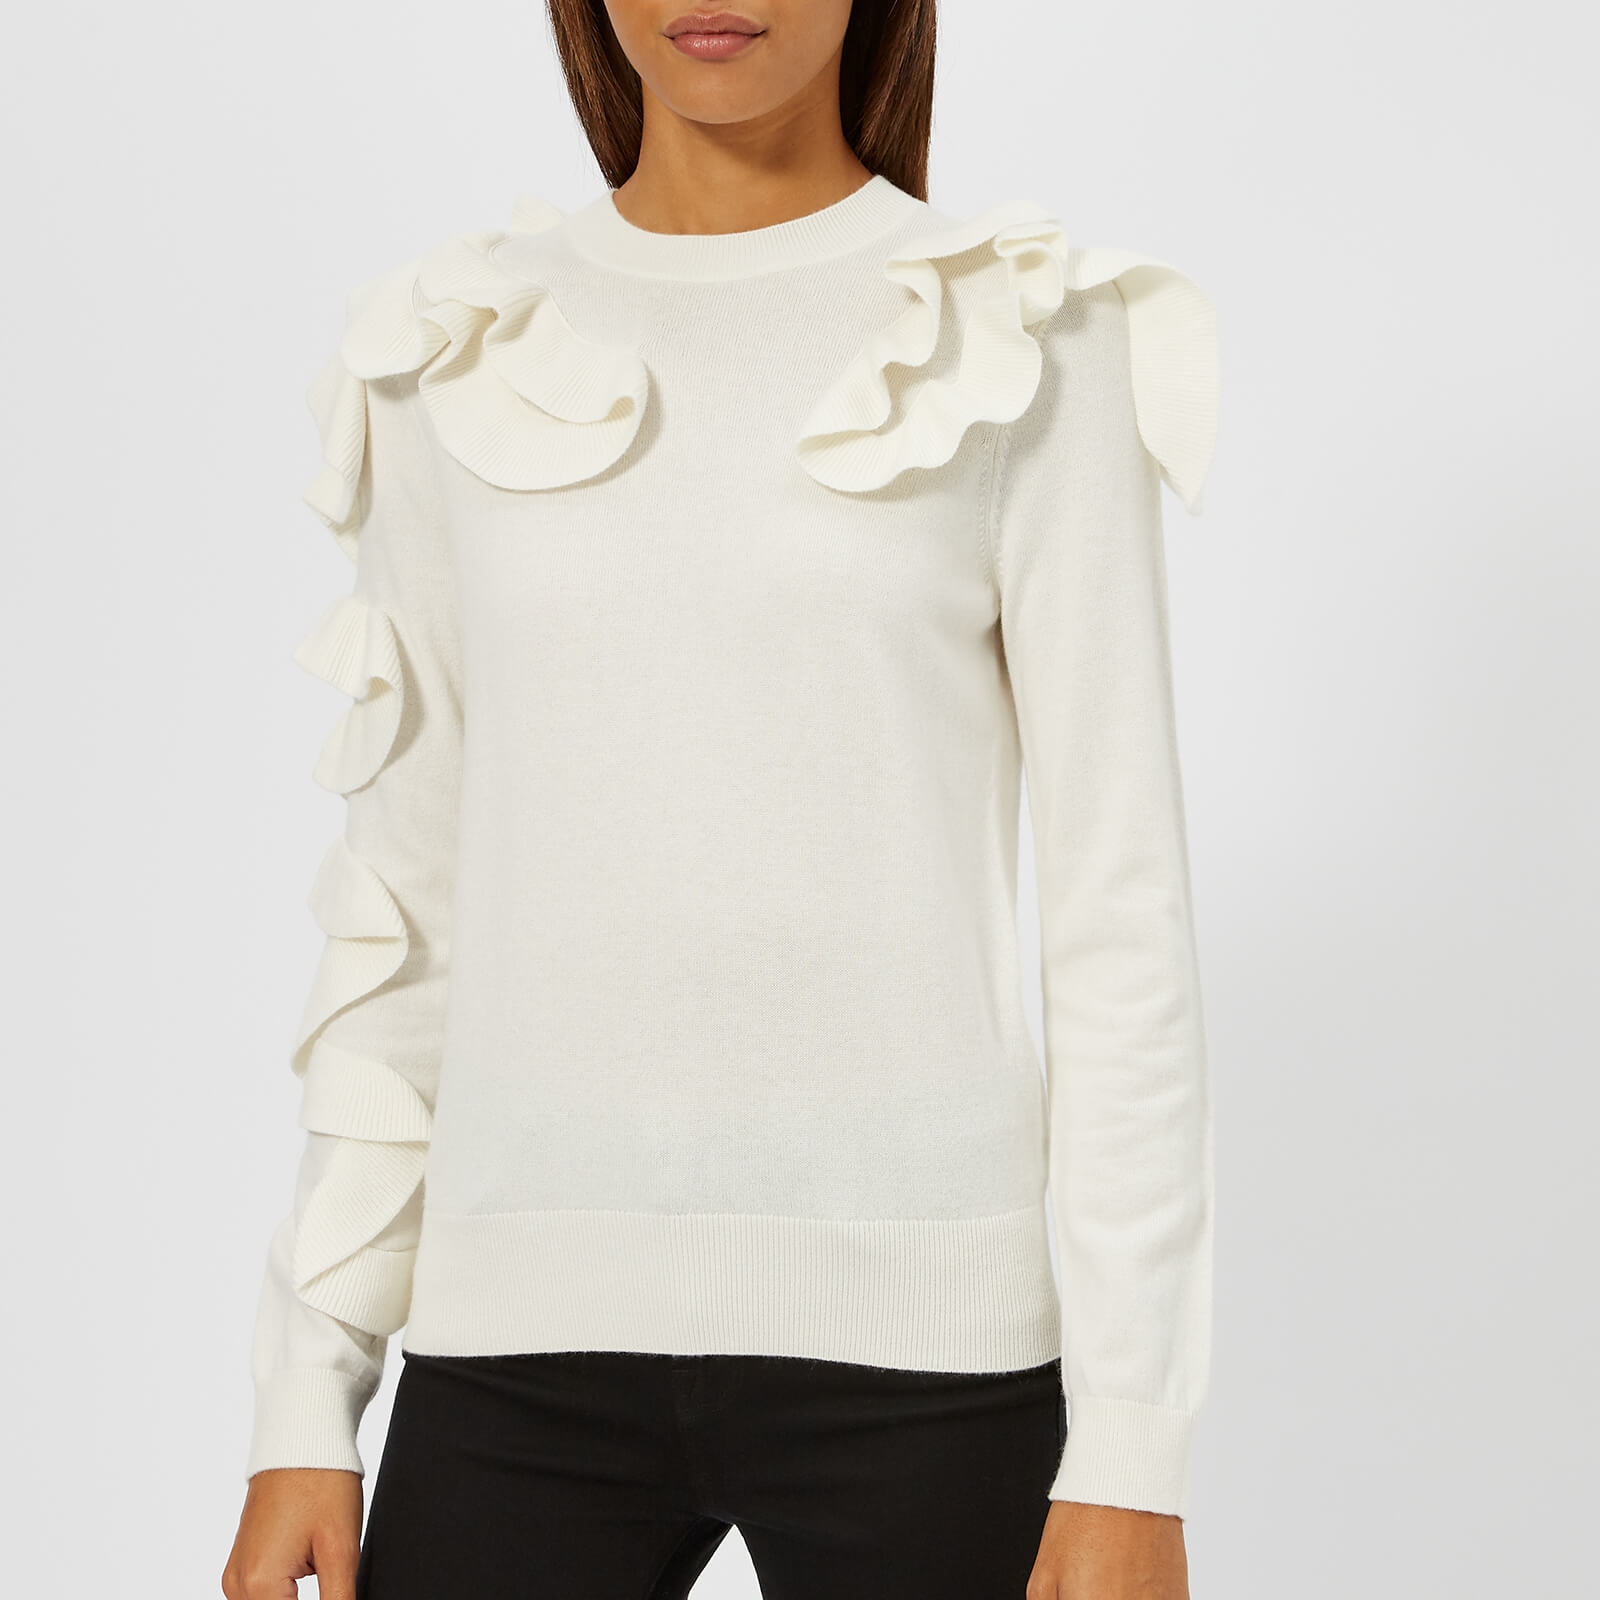 444e76d53 Ted Baker Women s Pallege Frill Sleeve and Shoulder Jumper - Ivory ...